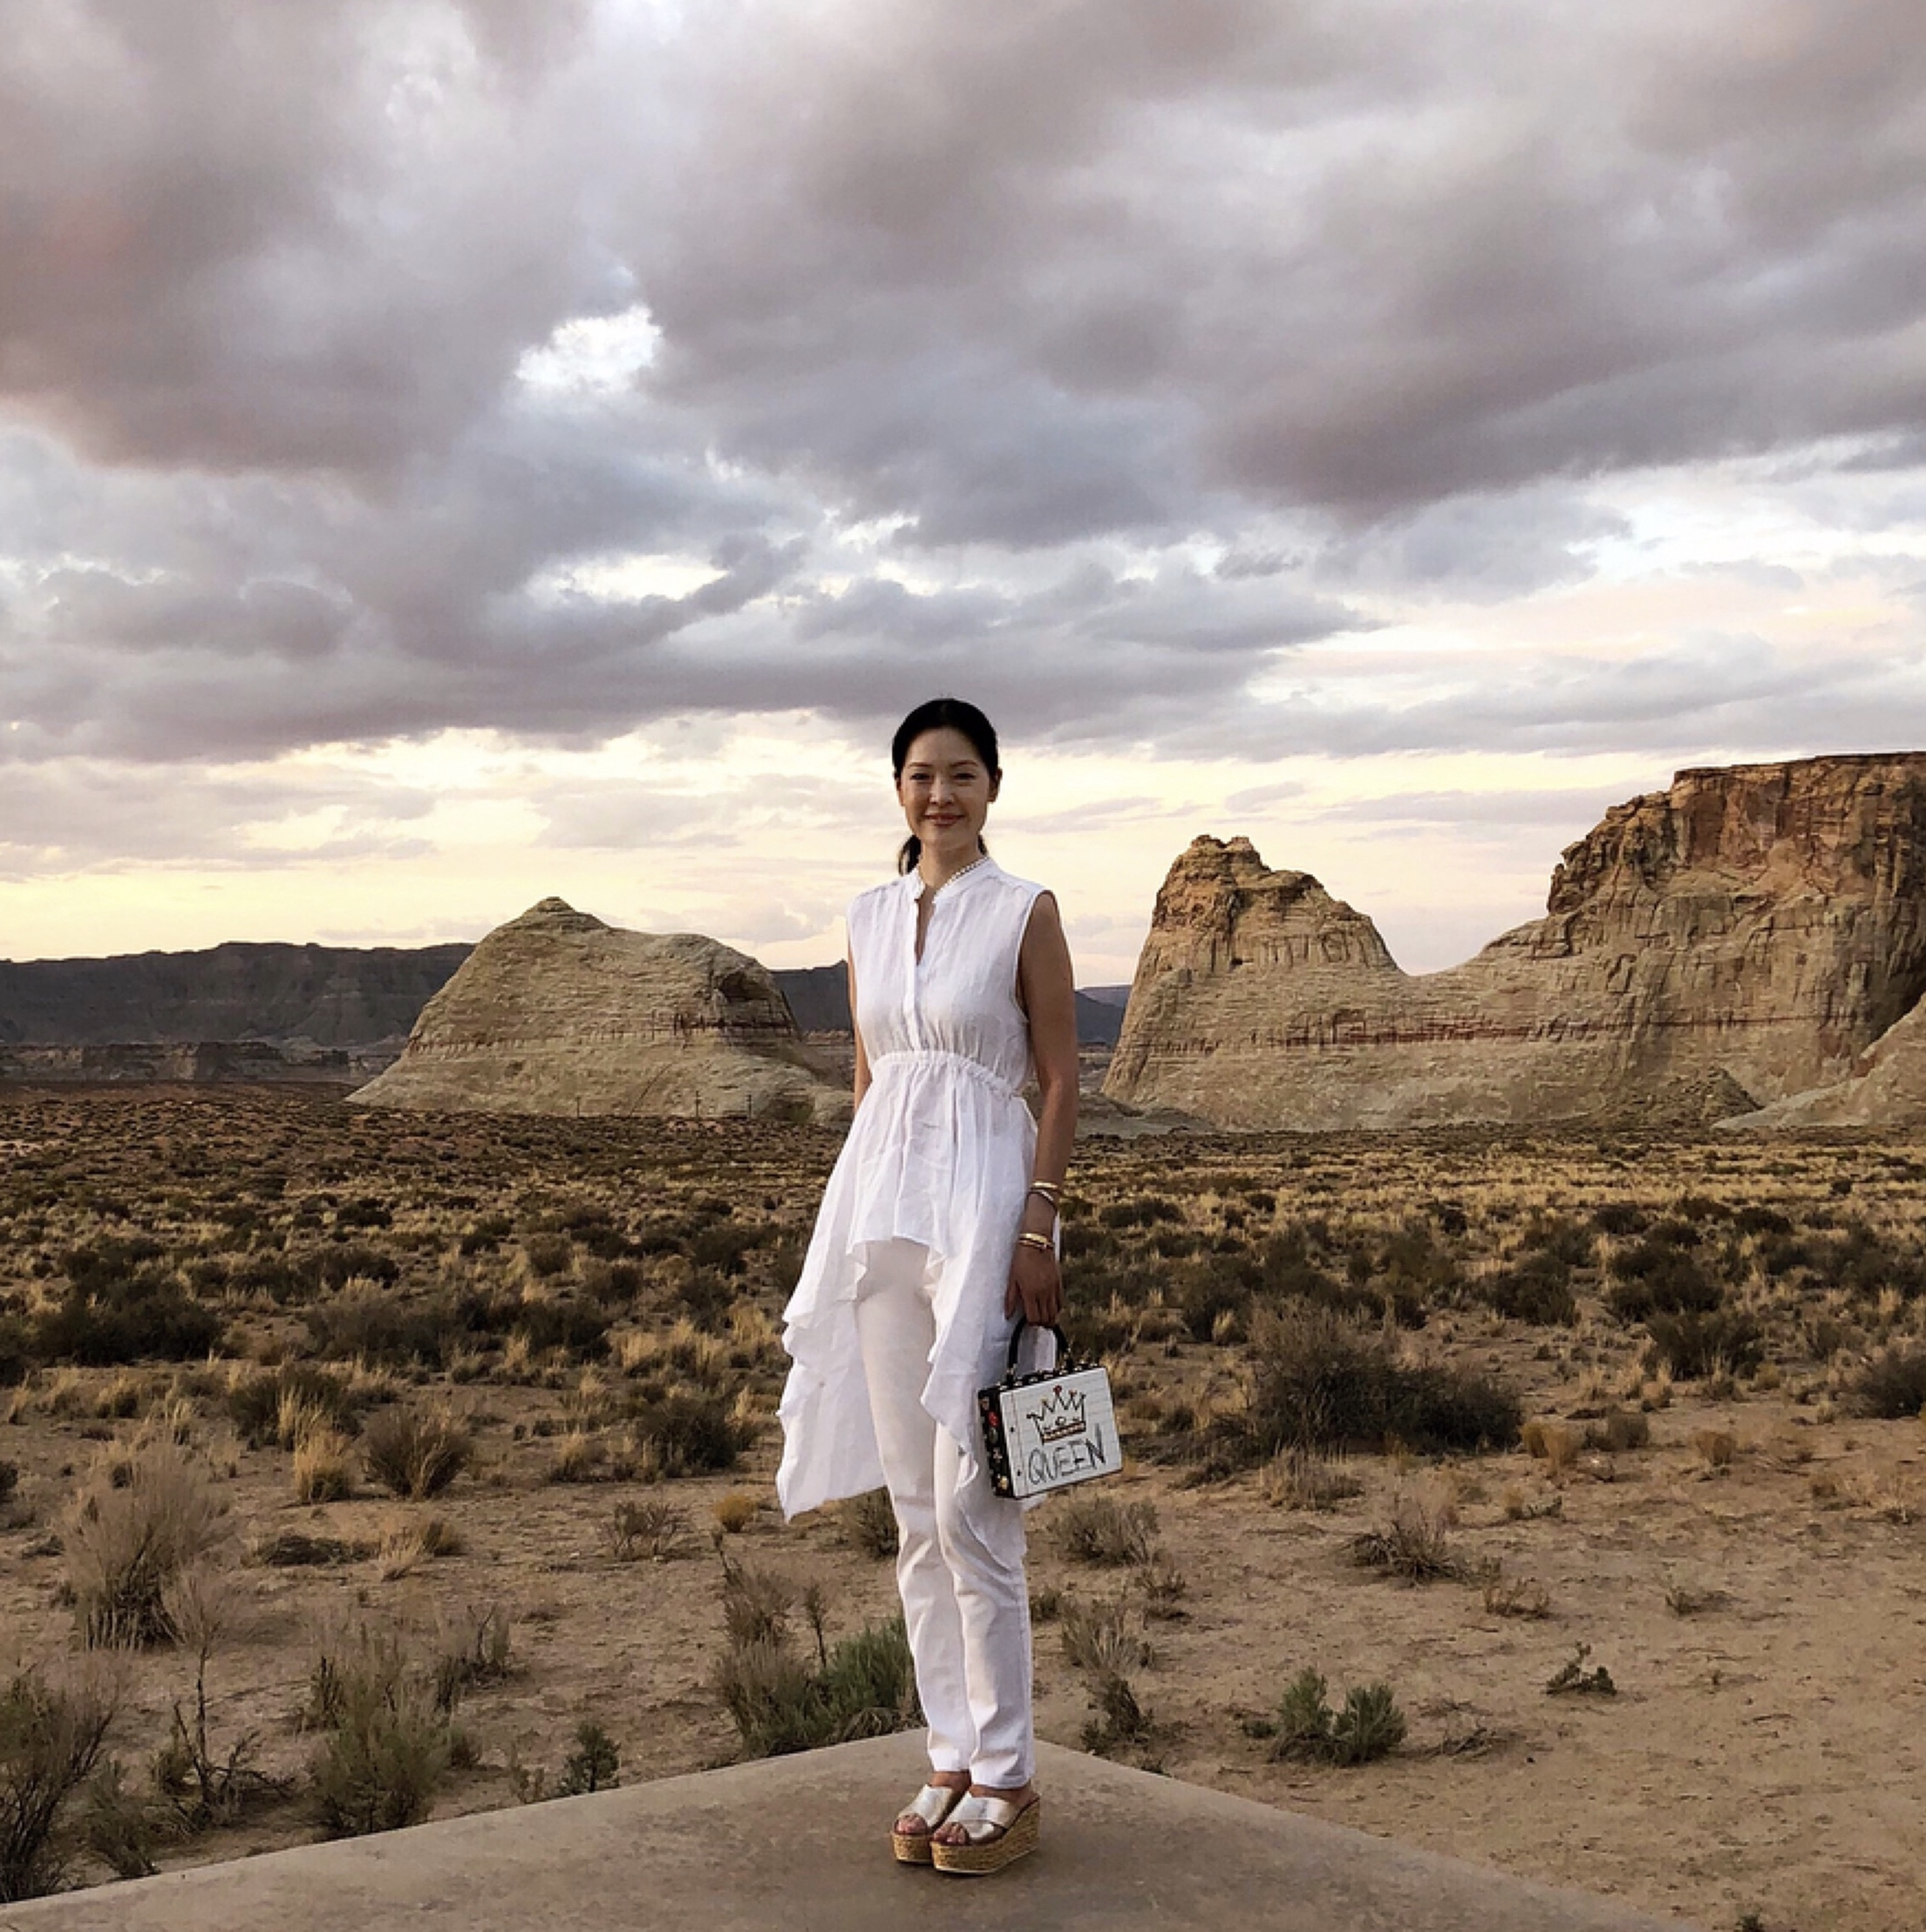 A Photo of Gothamista in a Desert